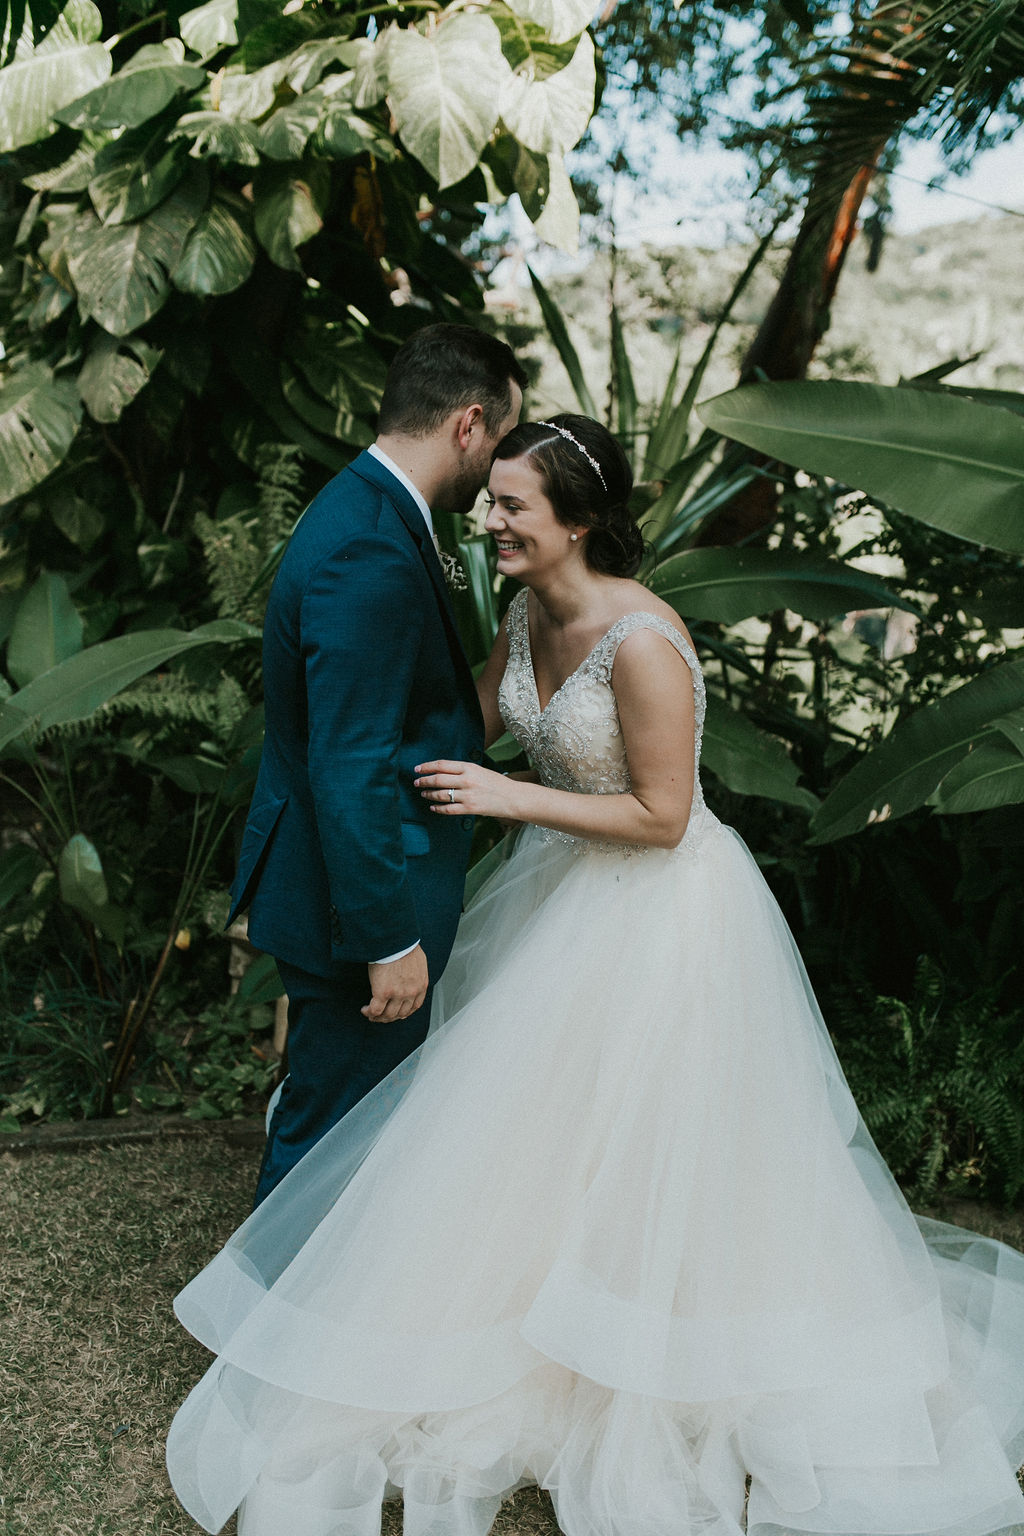 Casablanca Bridal Real Bride: Brigitta & Jeff's Mexico Wedding In Style 2315 | Layered Tulle Skirt Sparkling Ballgown Wedding Dress